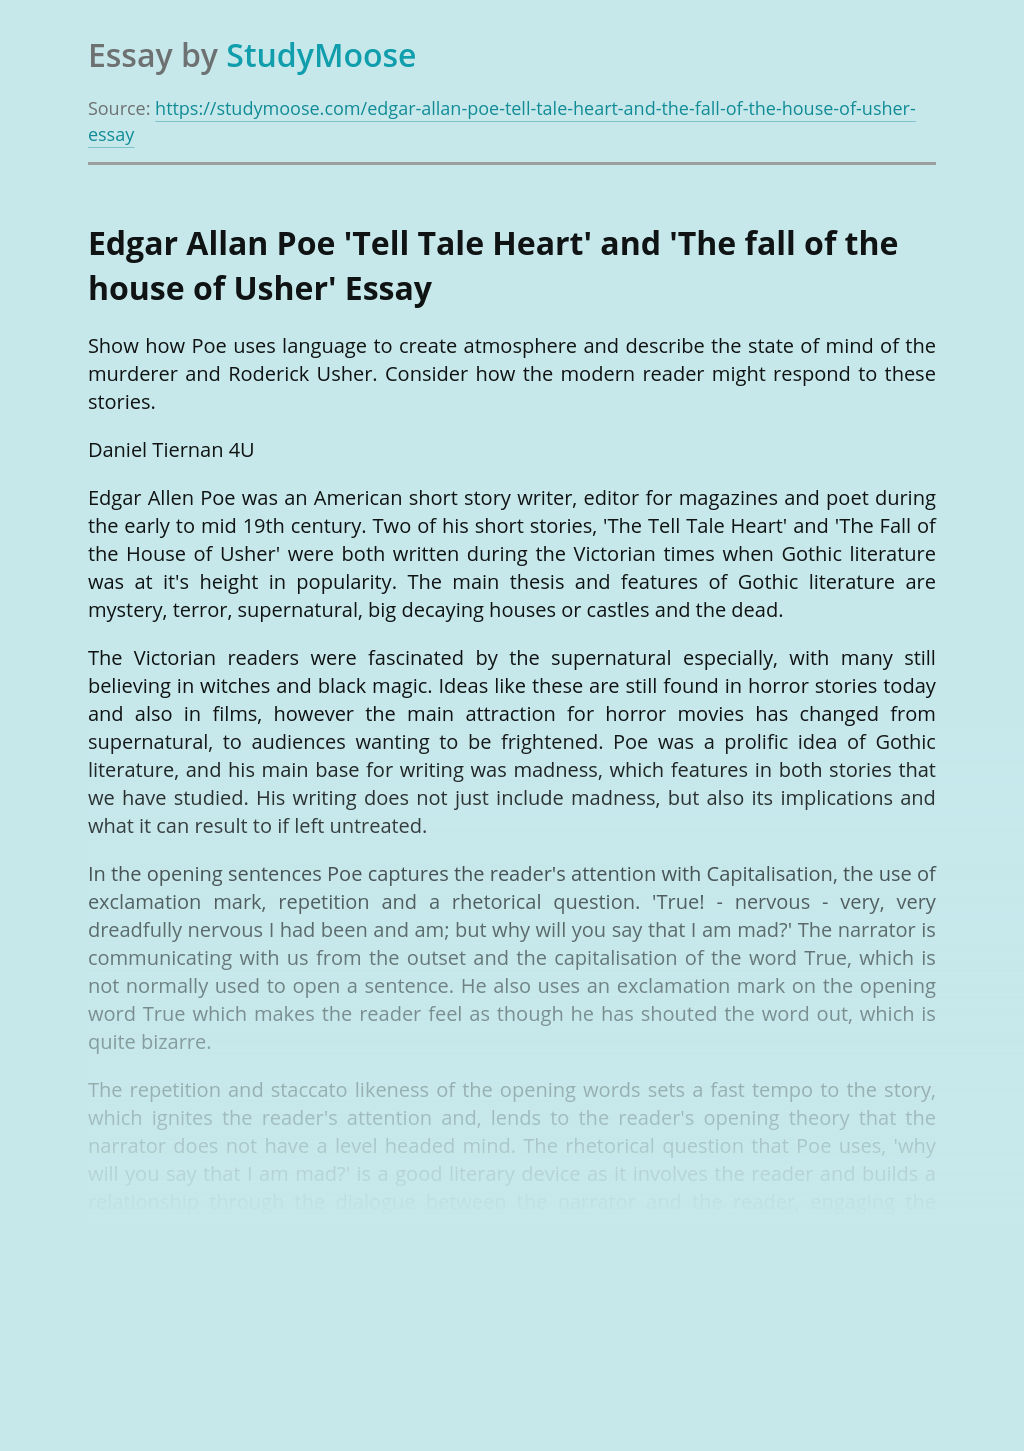 Edgar Allan Poe 'Tell Tale Heart' and 'The fall of the house of Usher'